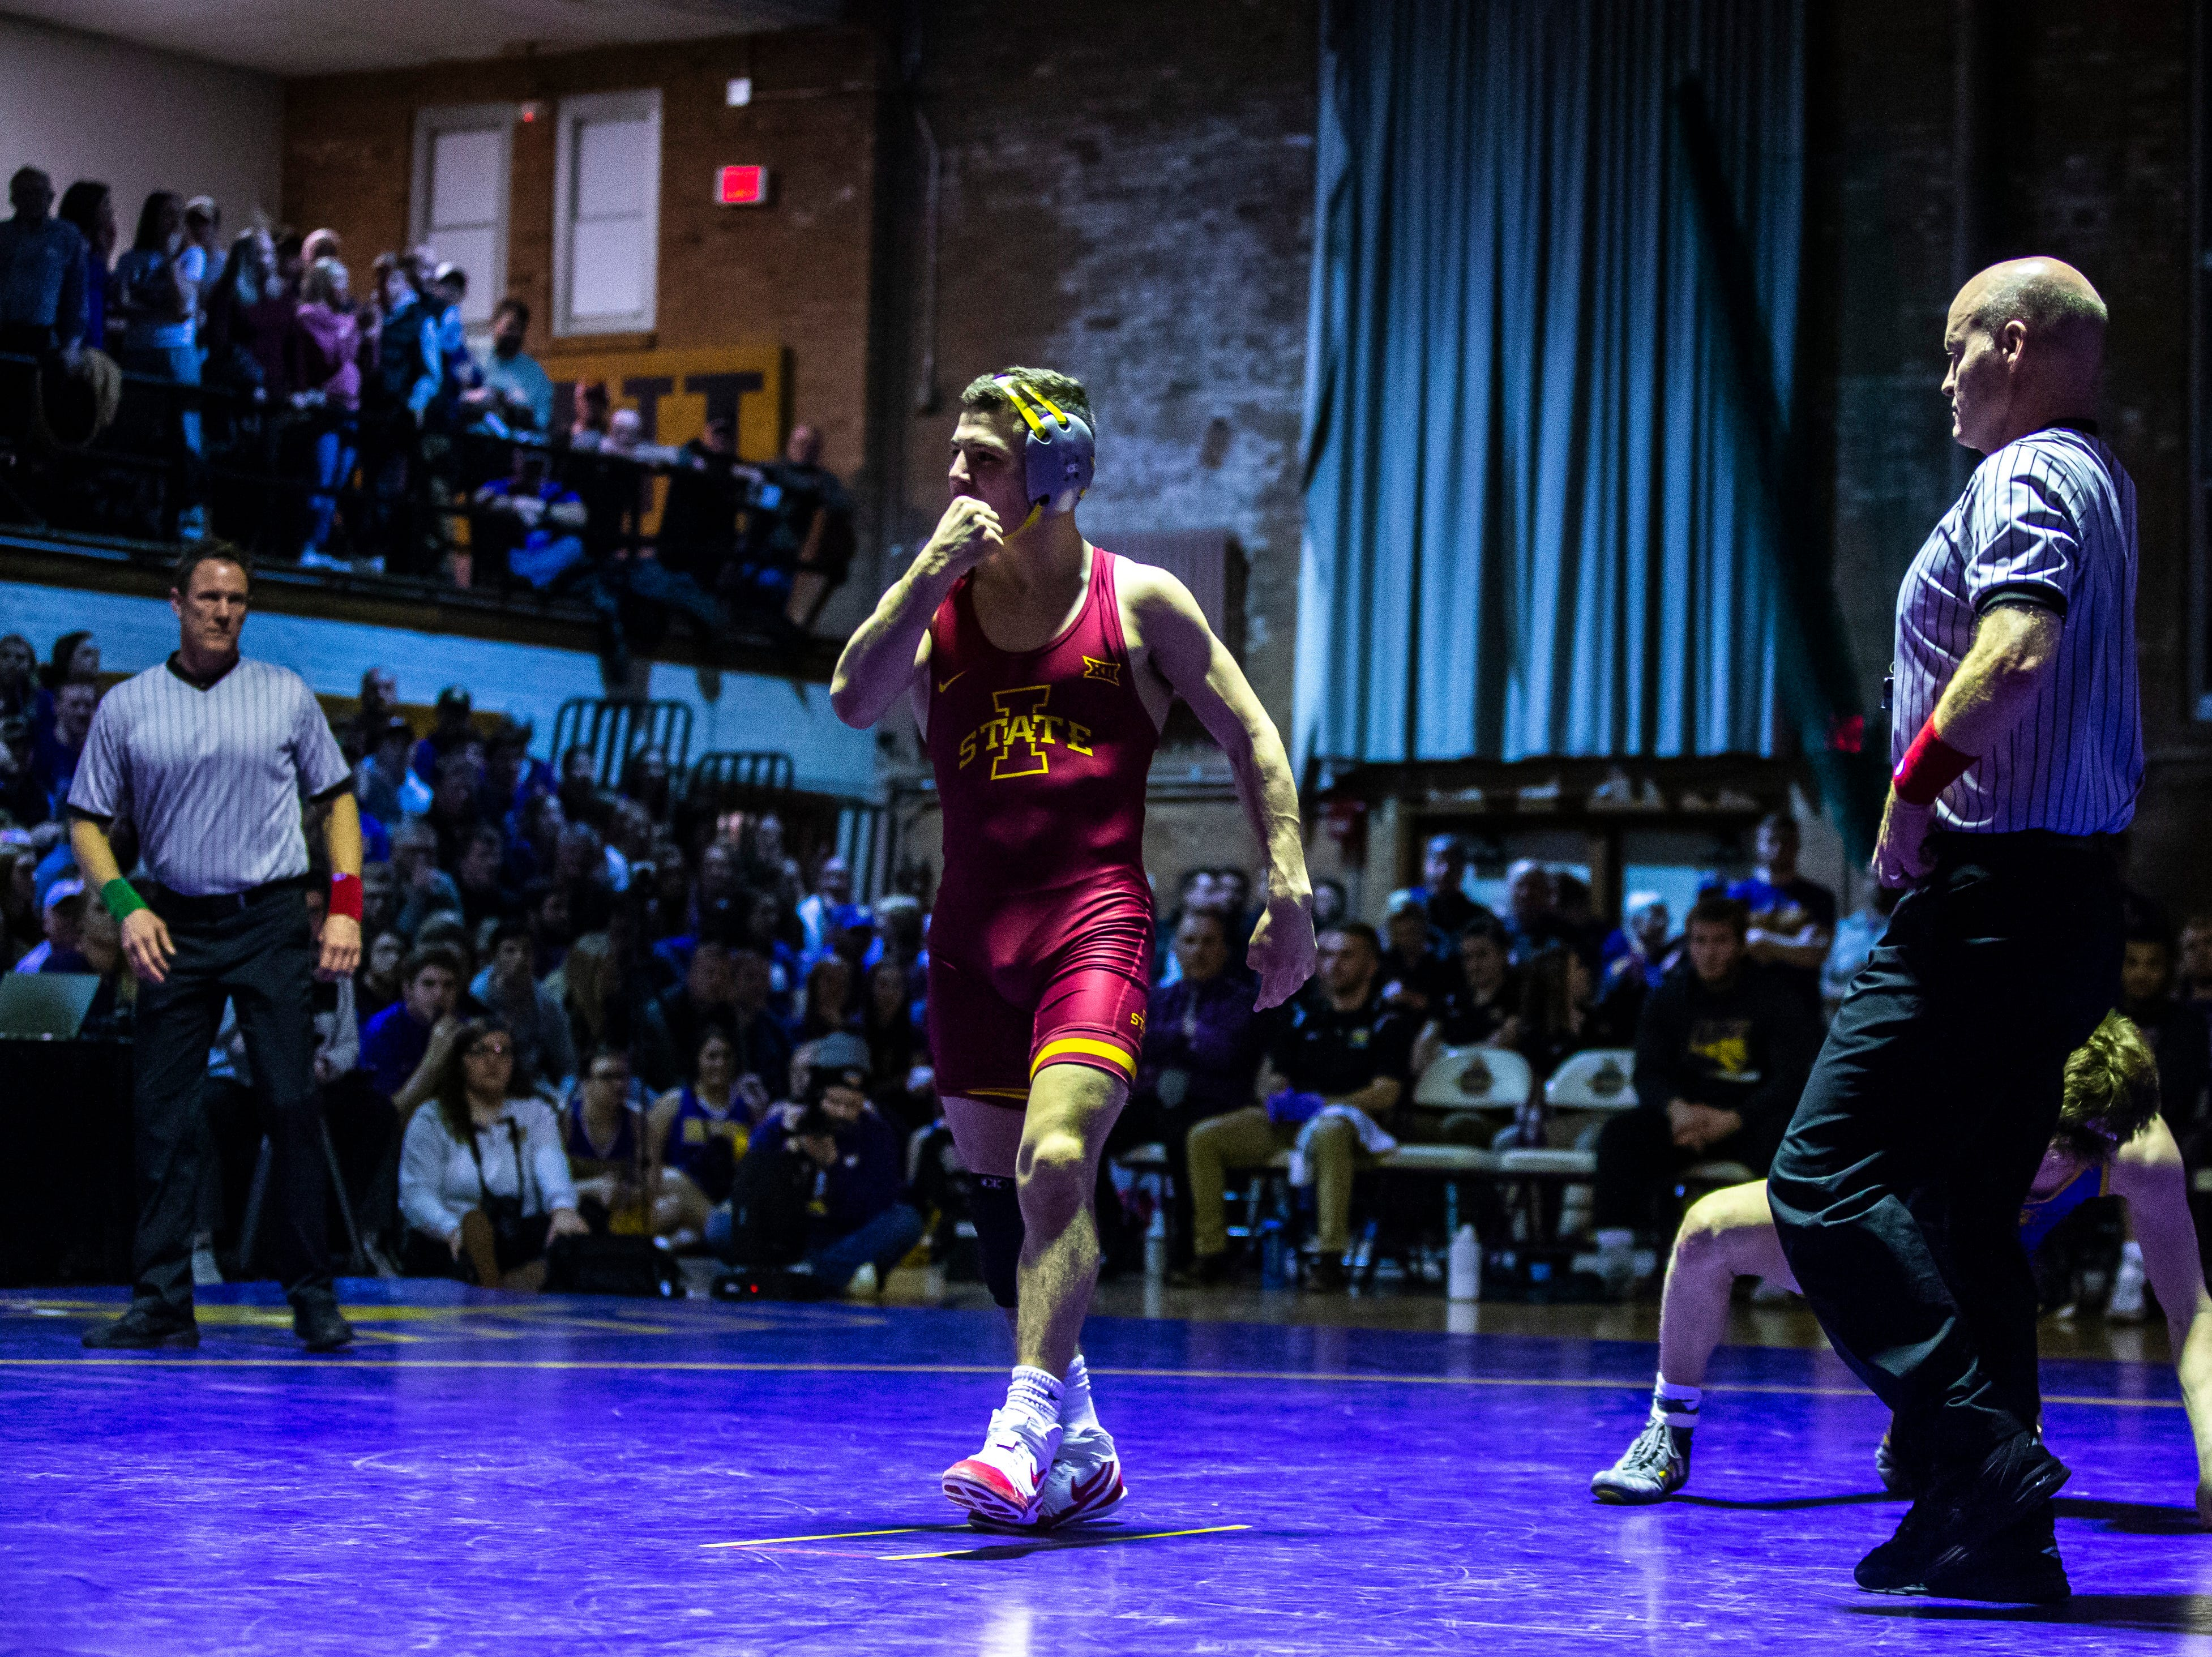 Iowa State's Austin Gomez reacts after defeating Northern Iowa's Jack Skudlarczyk at 133 during a NCAA Big 12 wrestling dual on Thursday, Feb. 21, 2019 at the West Gymnasium in Cedar Falls, Iowa.